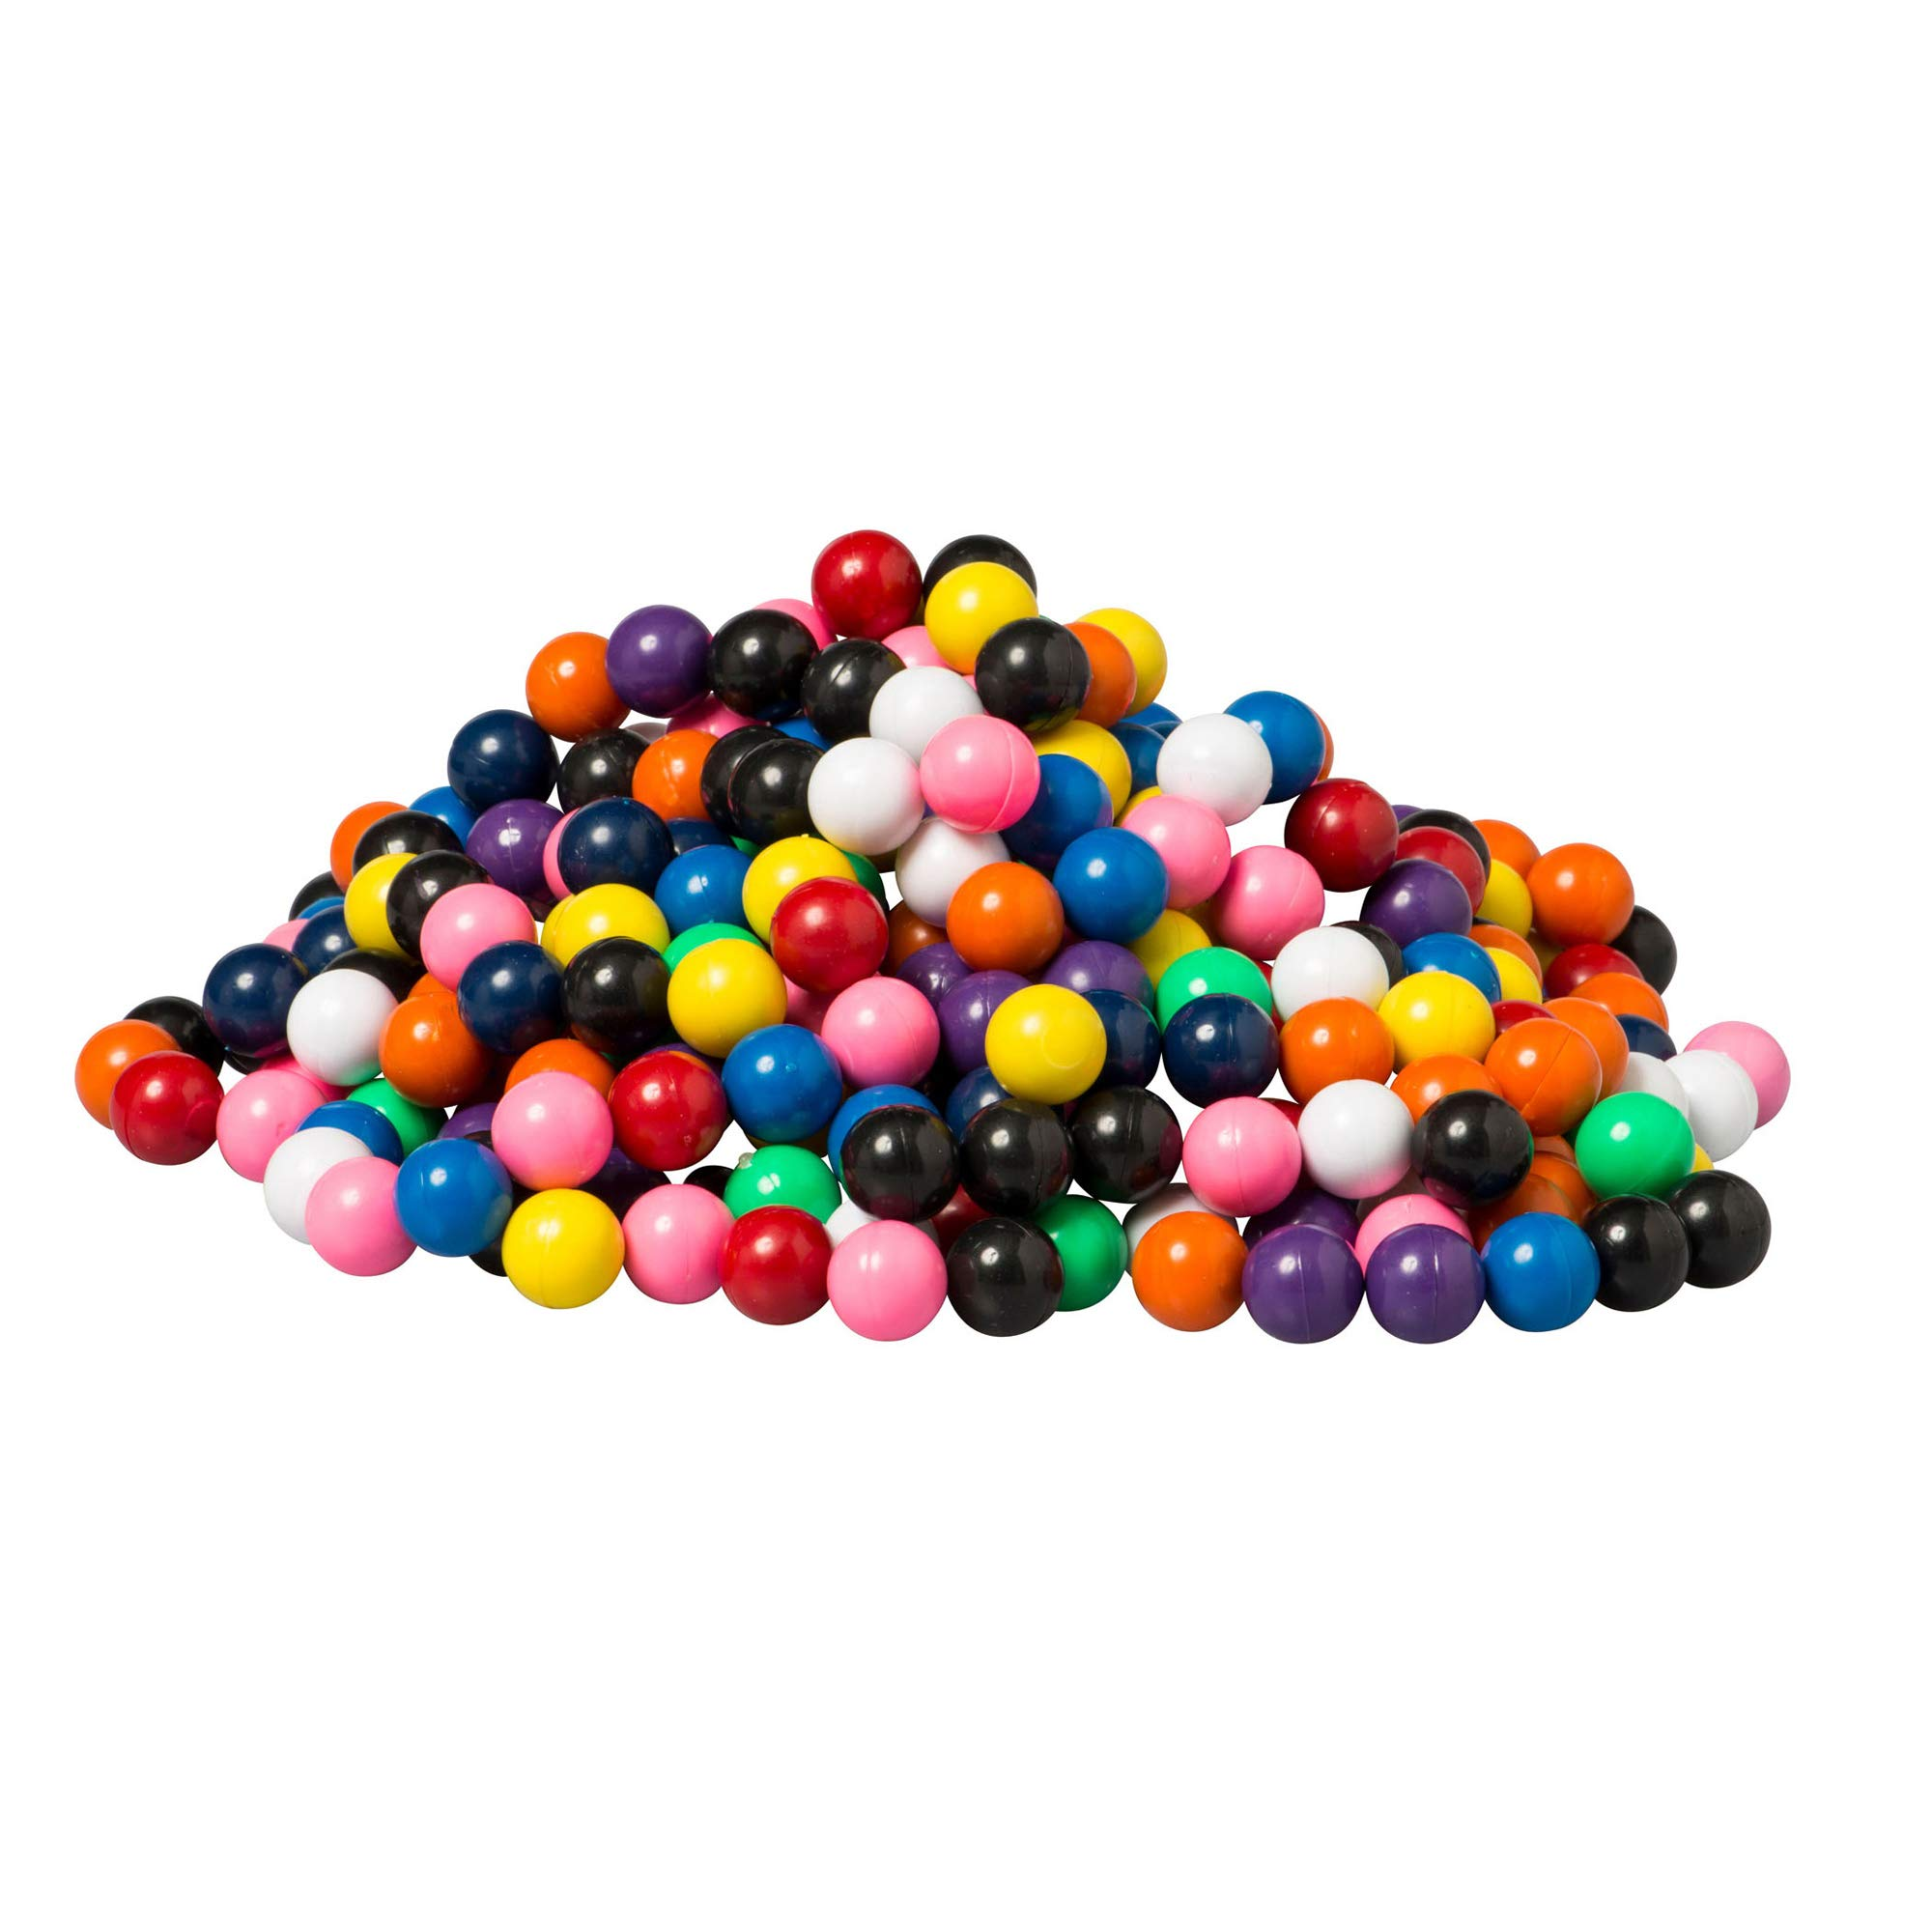 Dowling Magnets Solid-Colored Magnet Marbles (400 Count) by Dowling Magnets (Image #1)